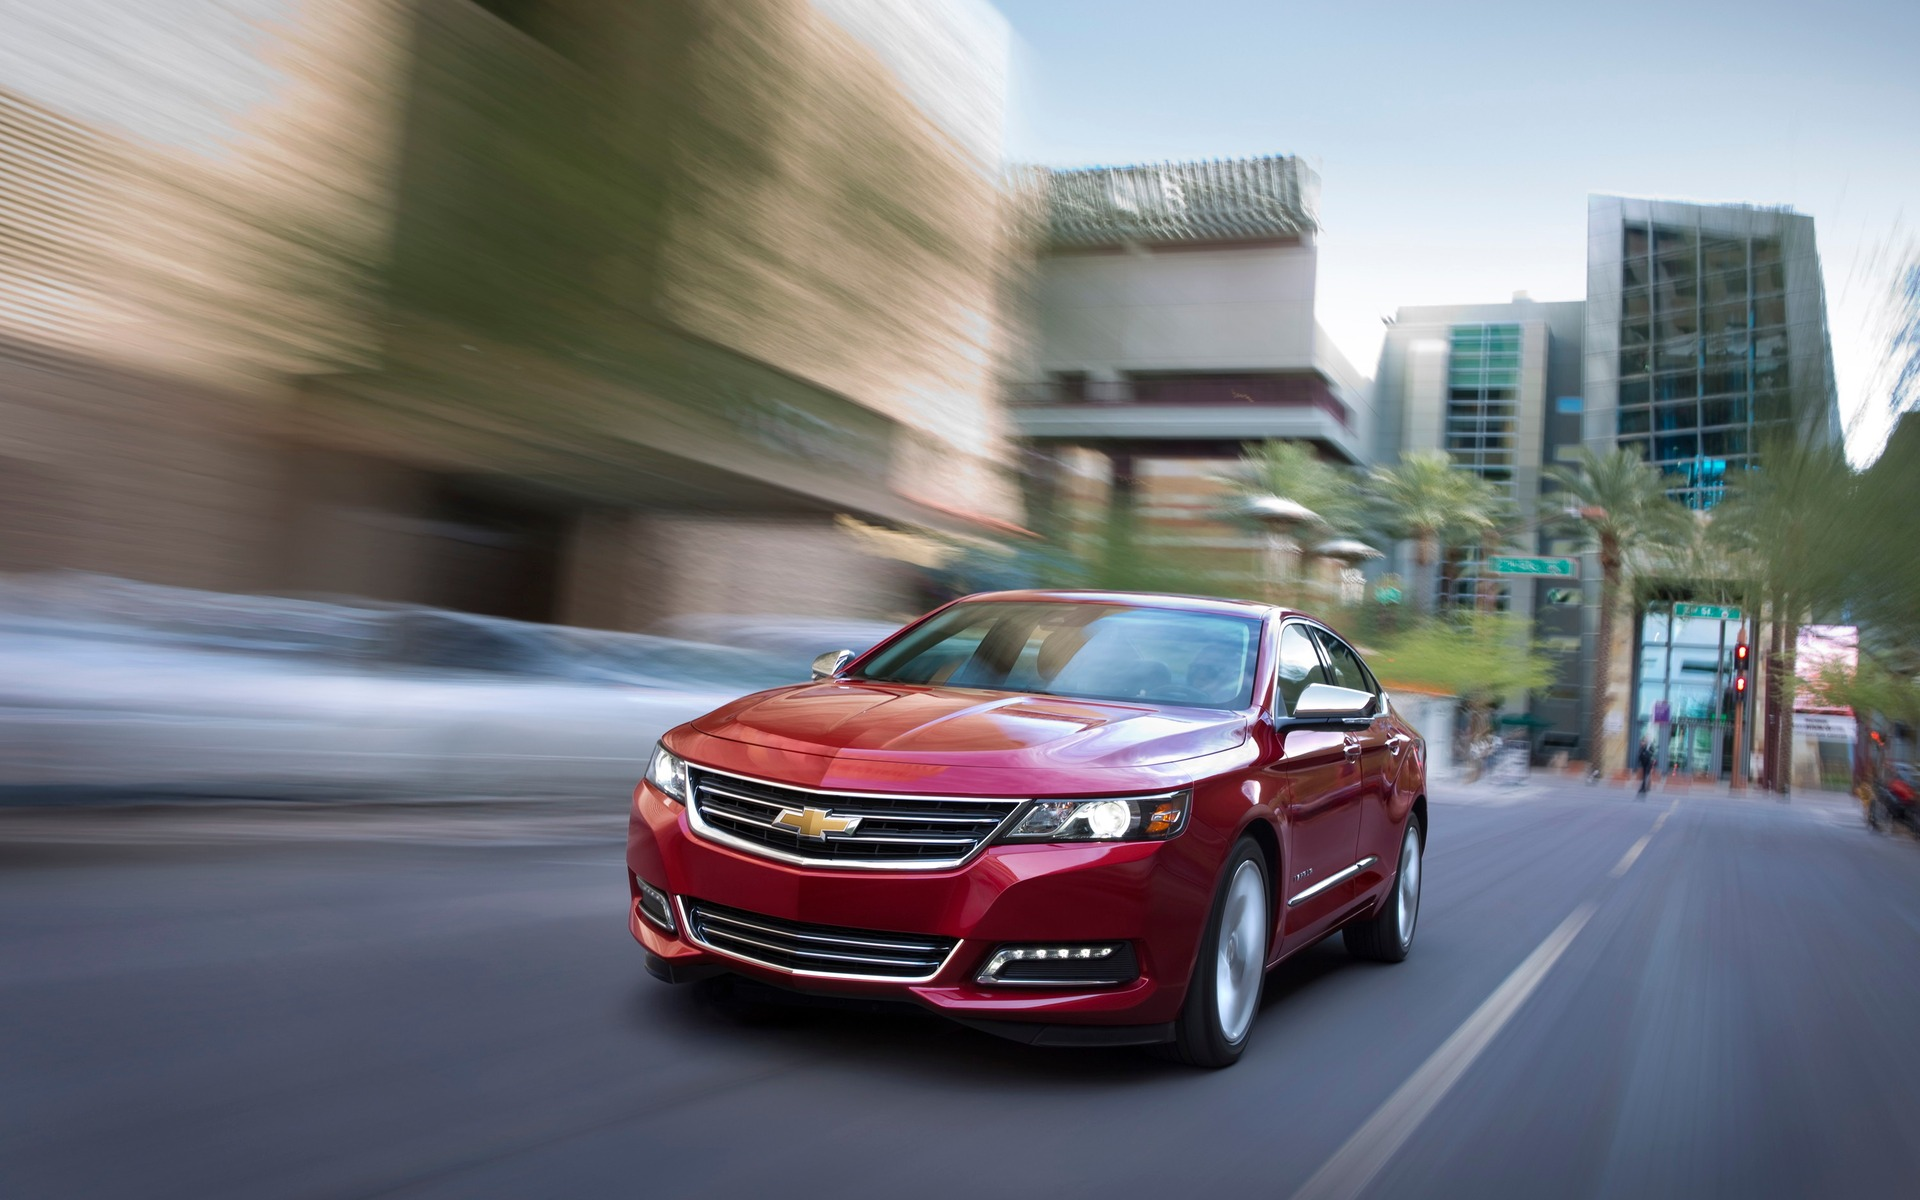 Chevrolet Volt Chevrolet Cruze And Four Other Gm Cars Dead